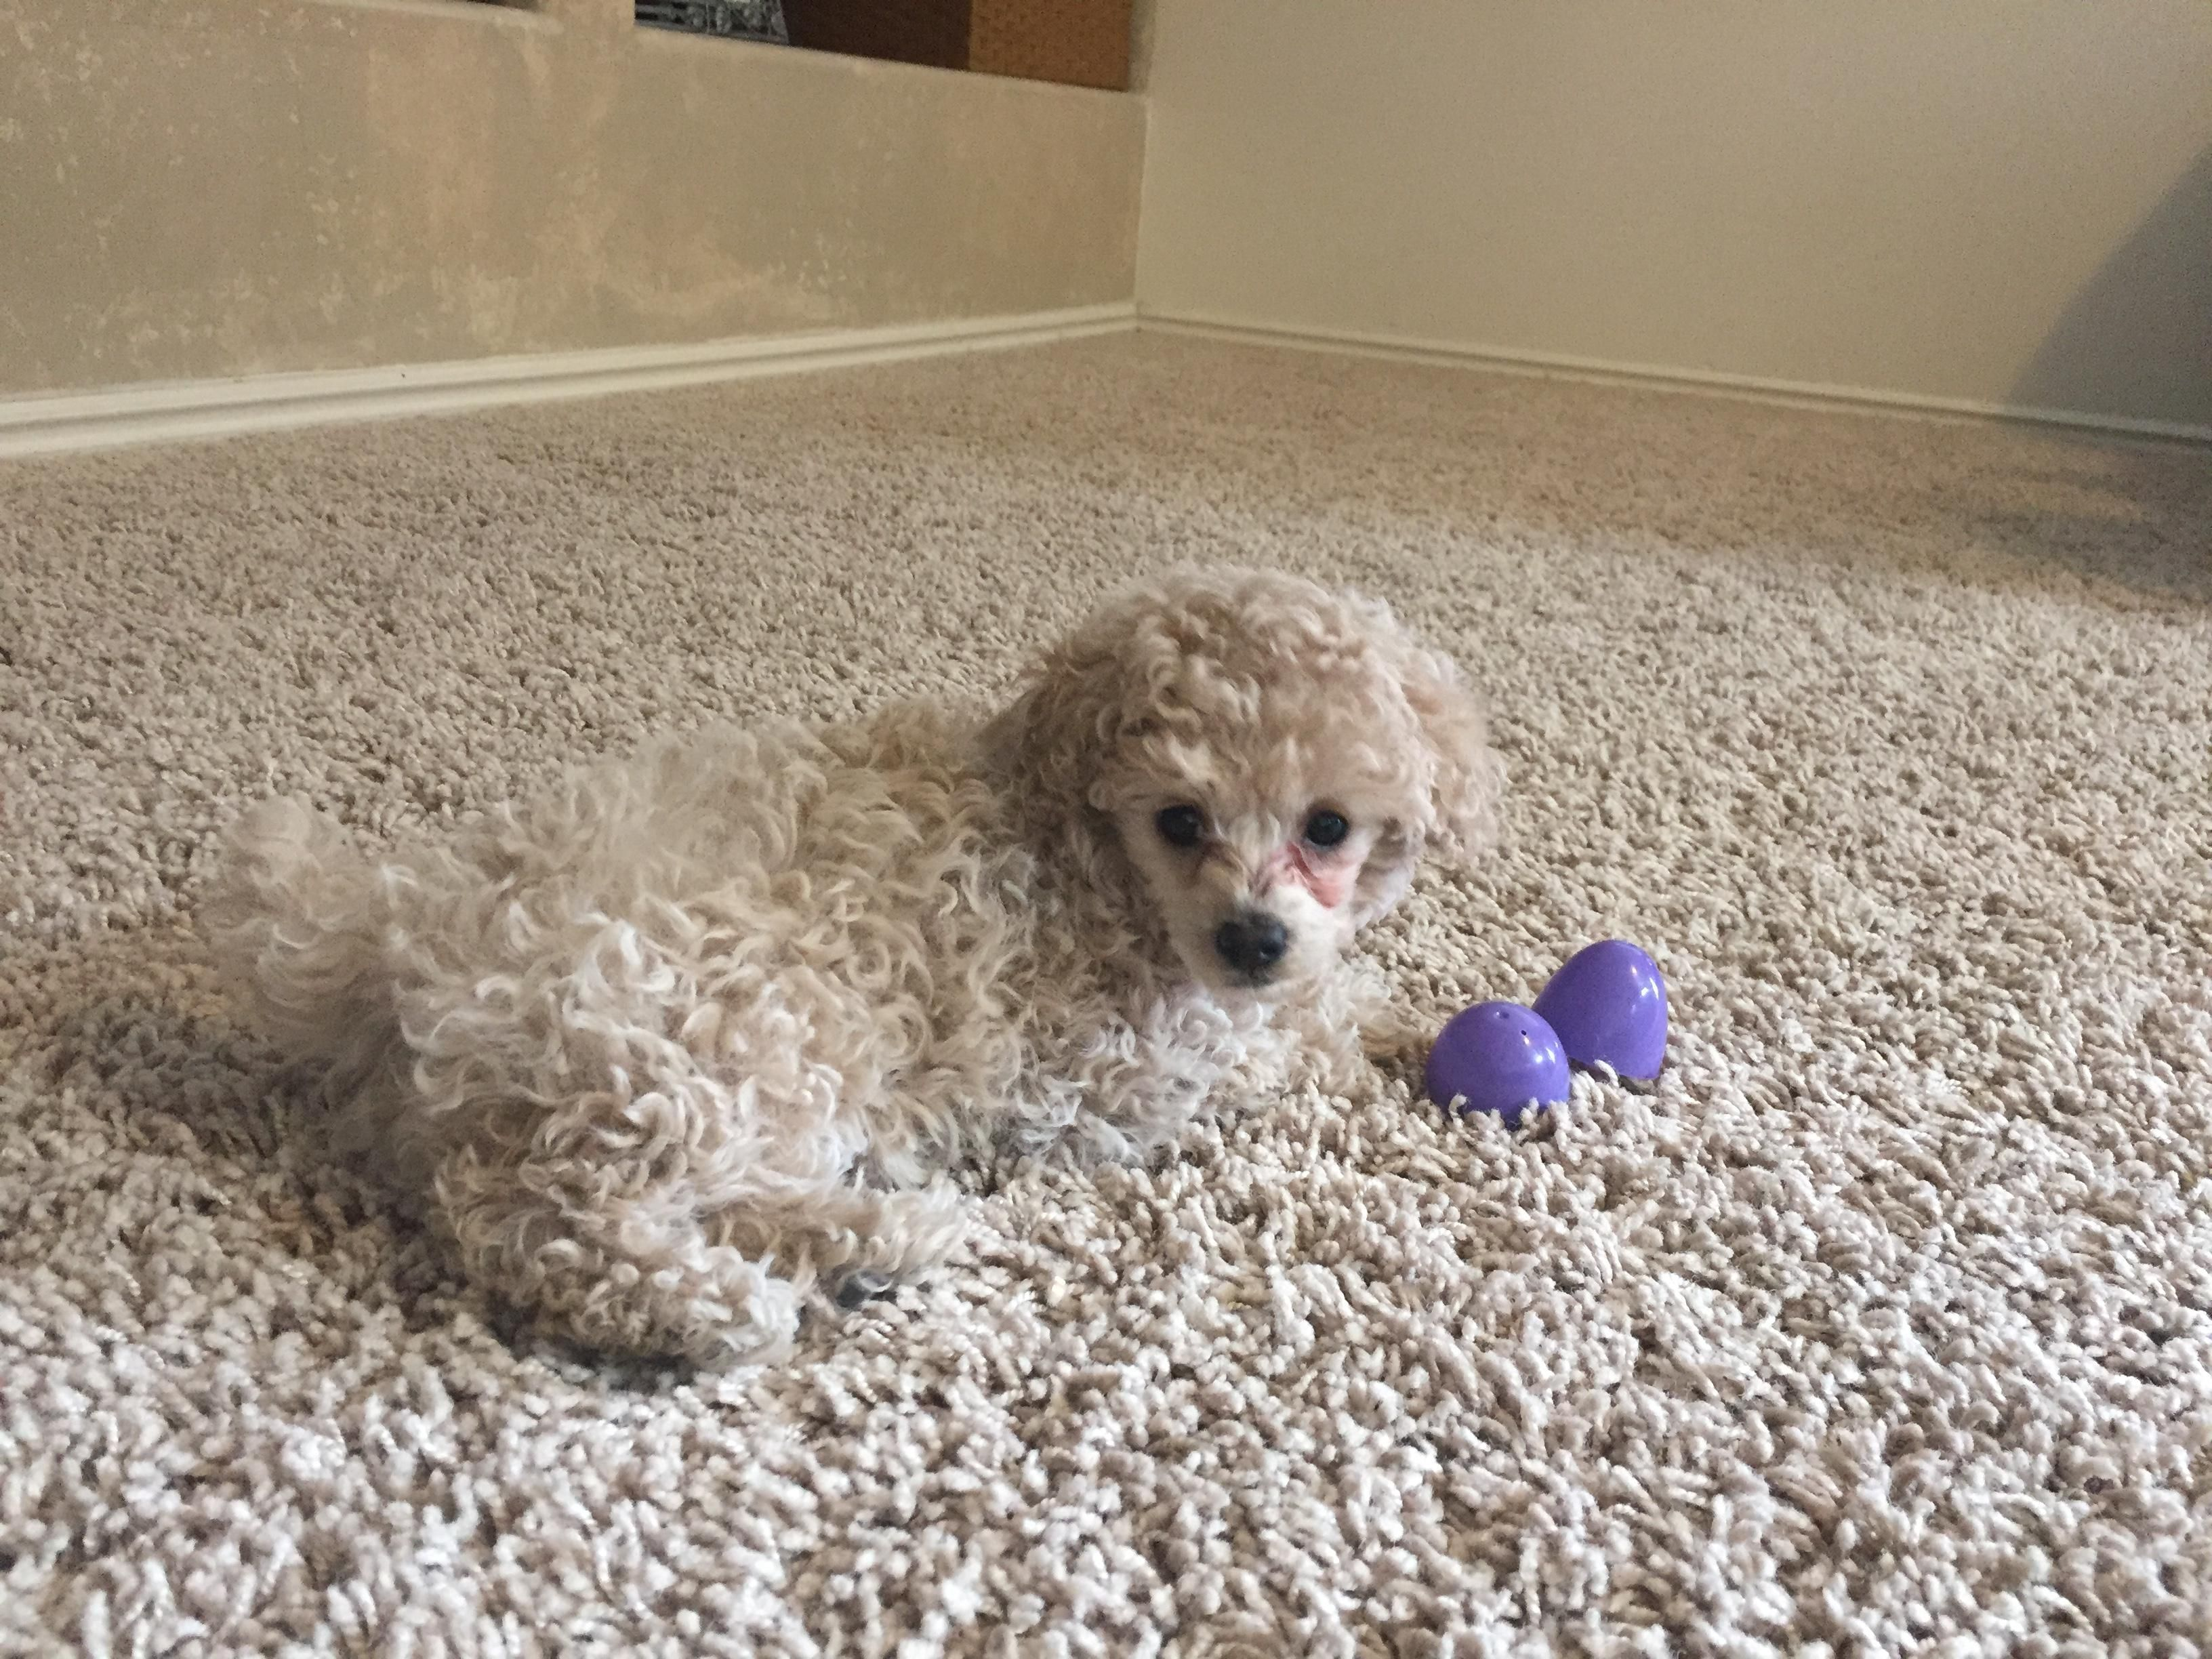 We got a new puppy. She matches the carpet perfectly.